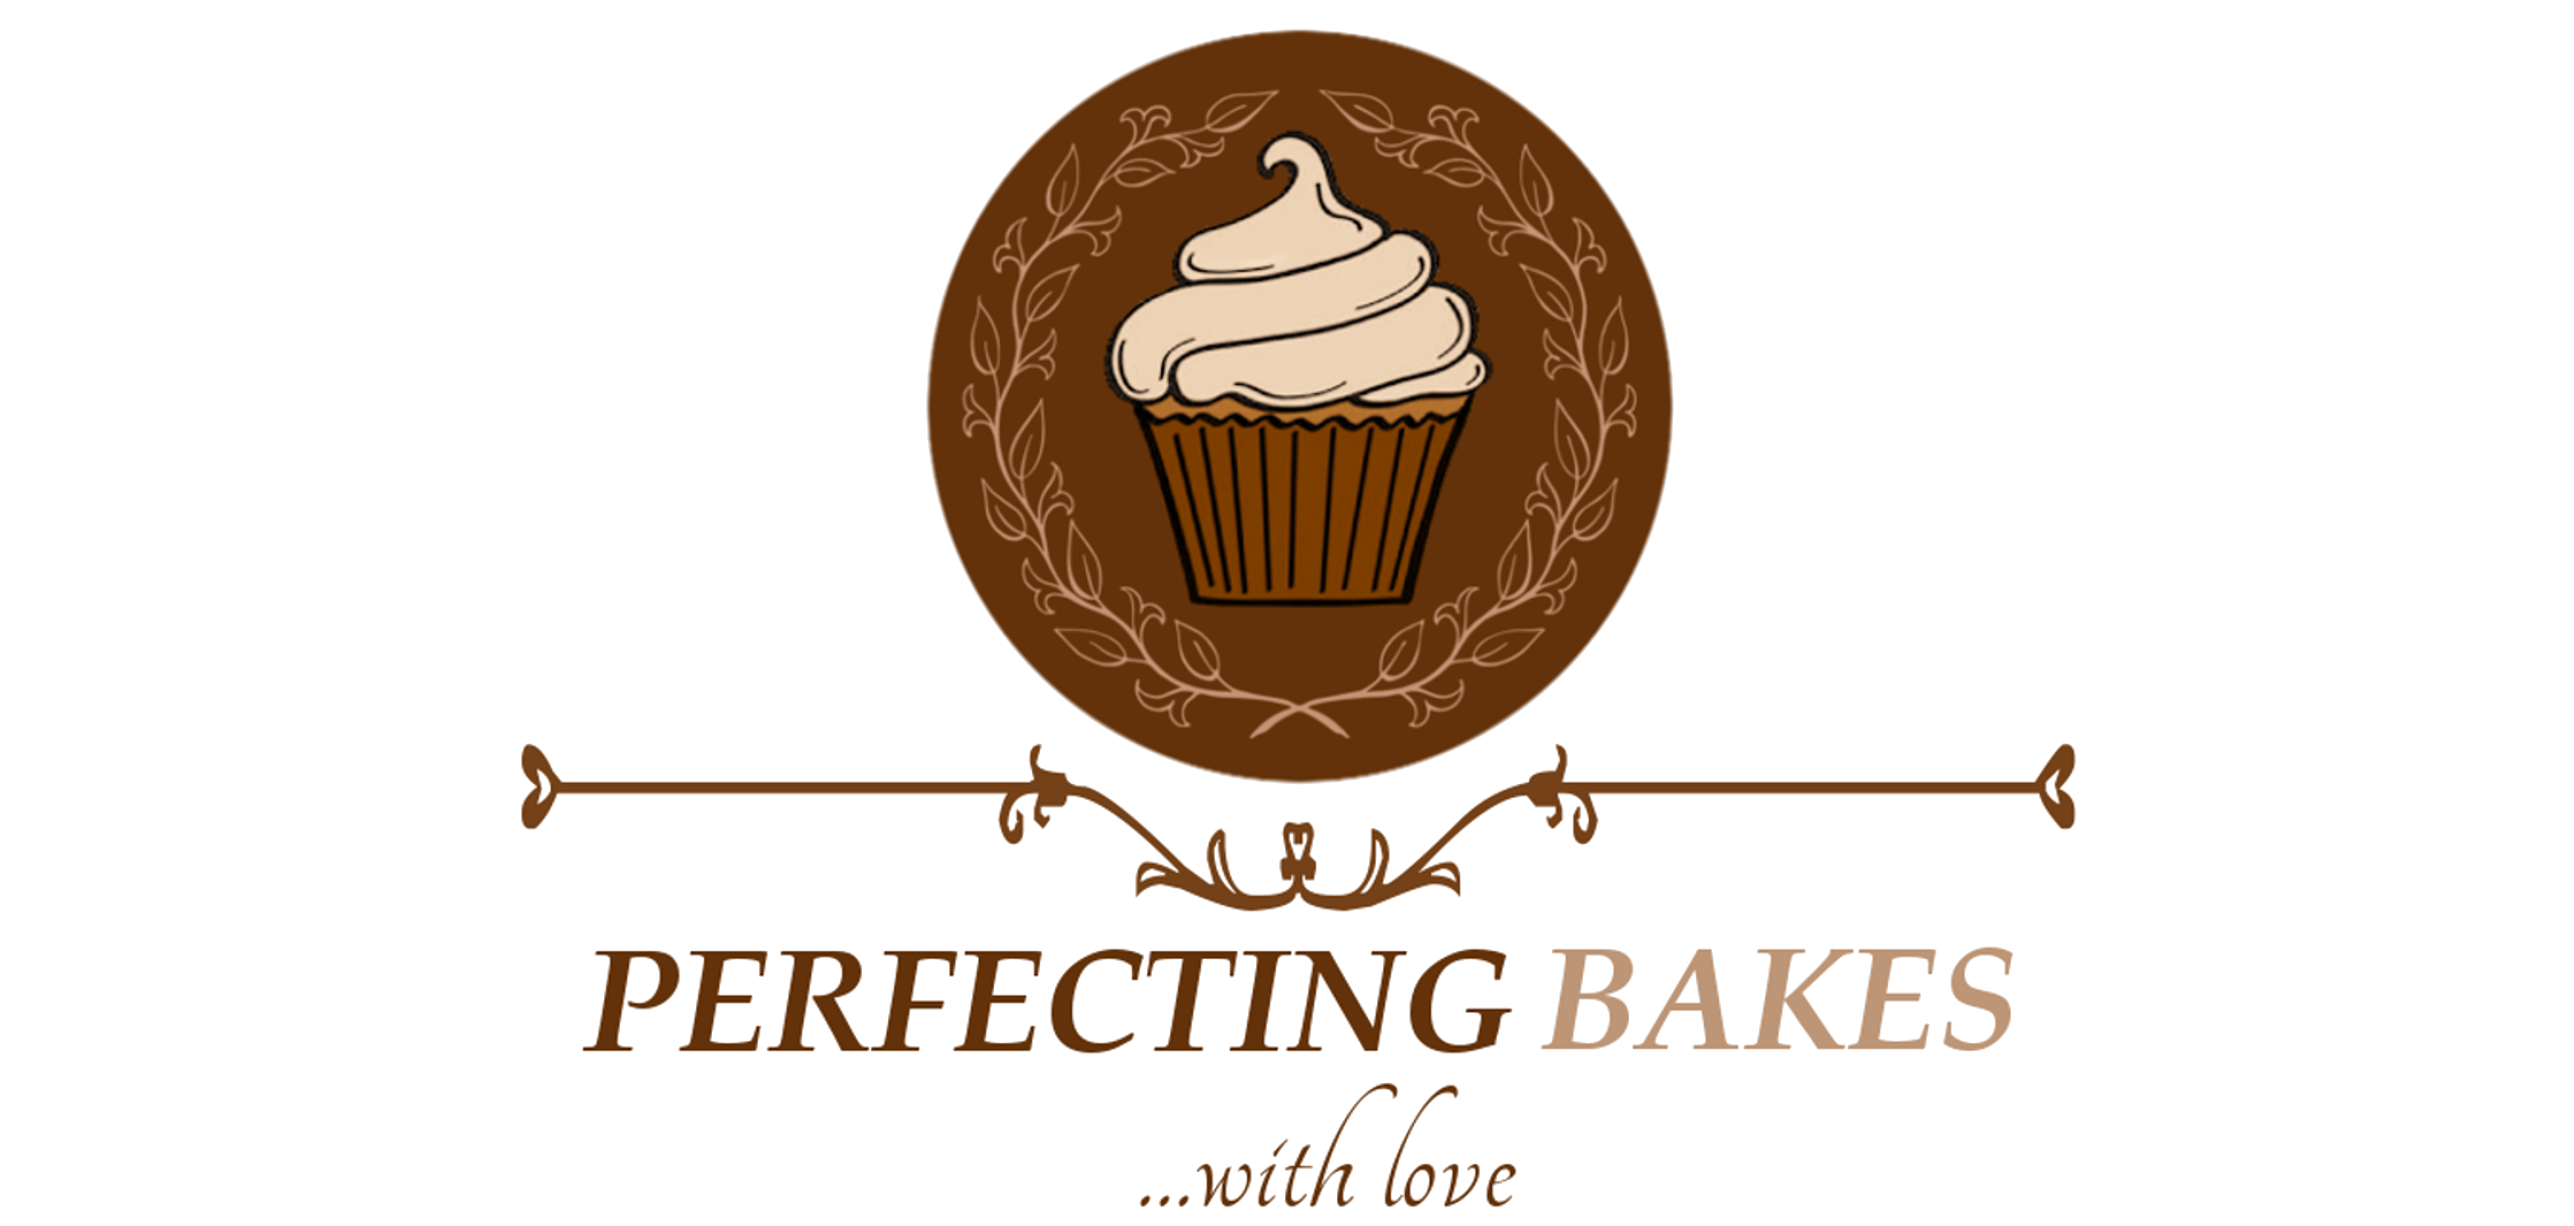 Perfecting Bakes